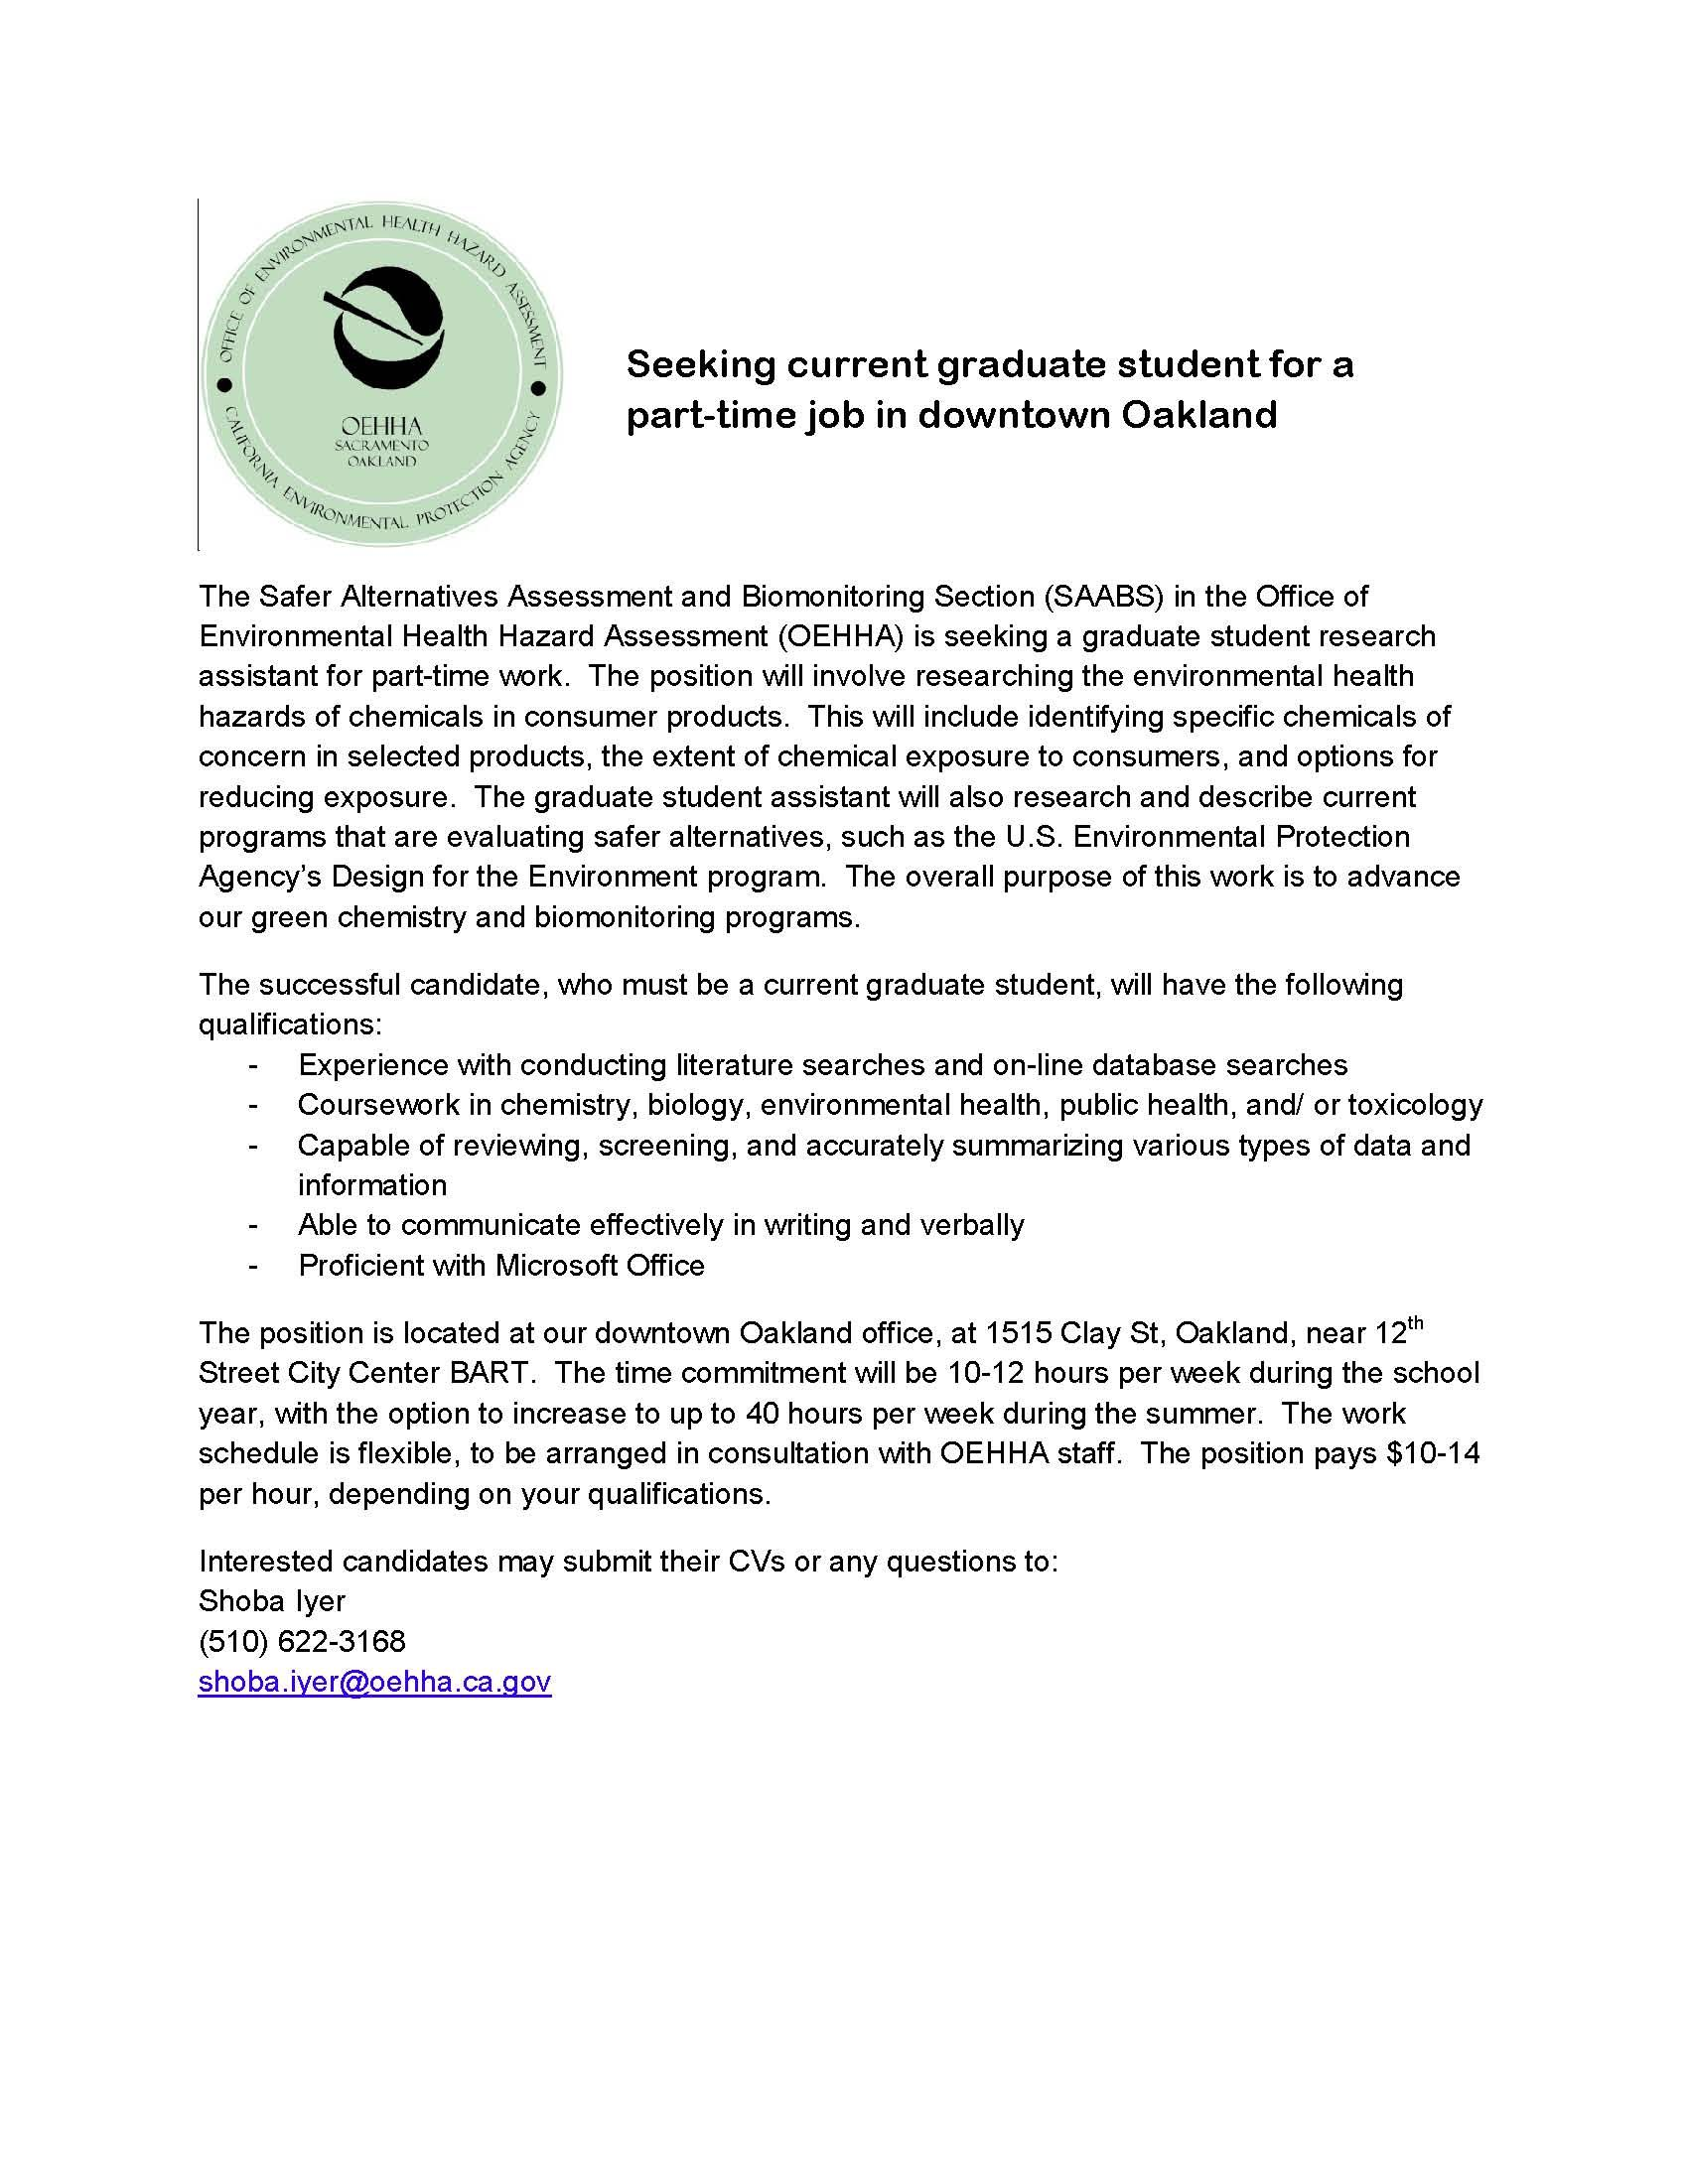 cover letter for postdoctoral fellowship the postdoctoral research leave fellowship assists candidates in obtaining tenure. Resume Example. Resume CV Cover Letter